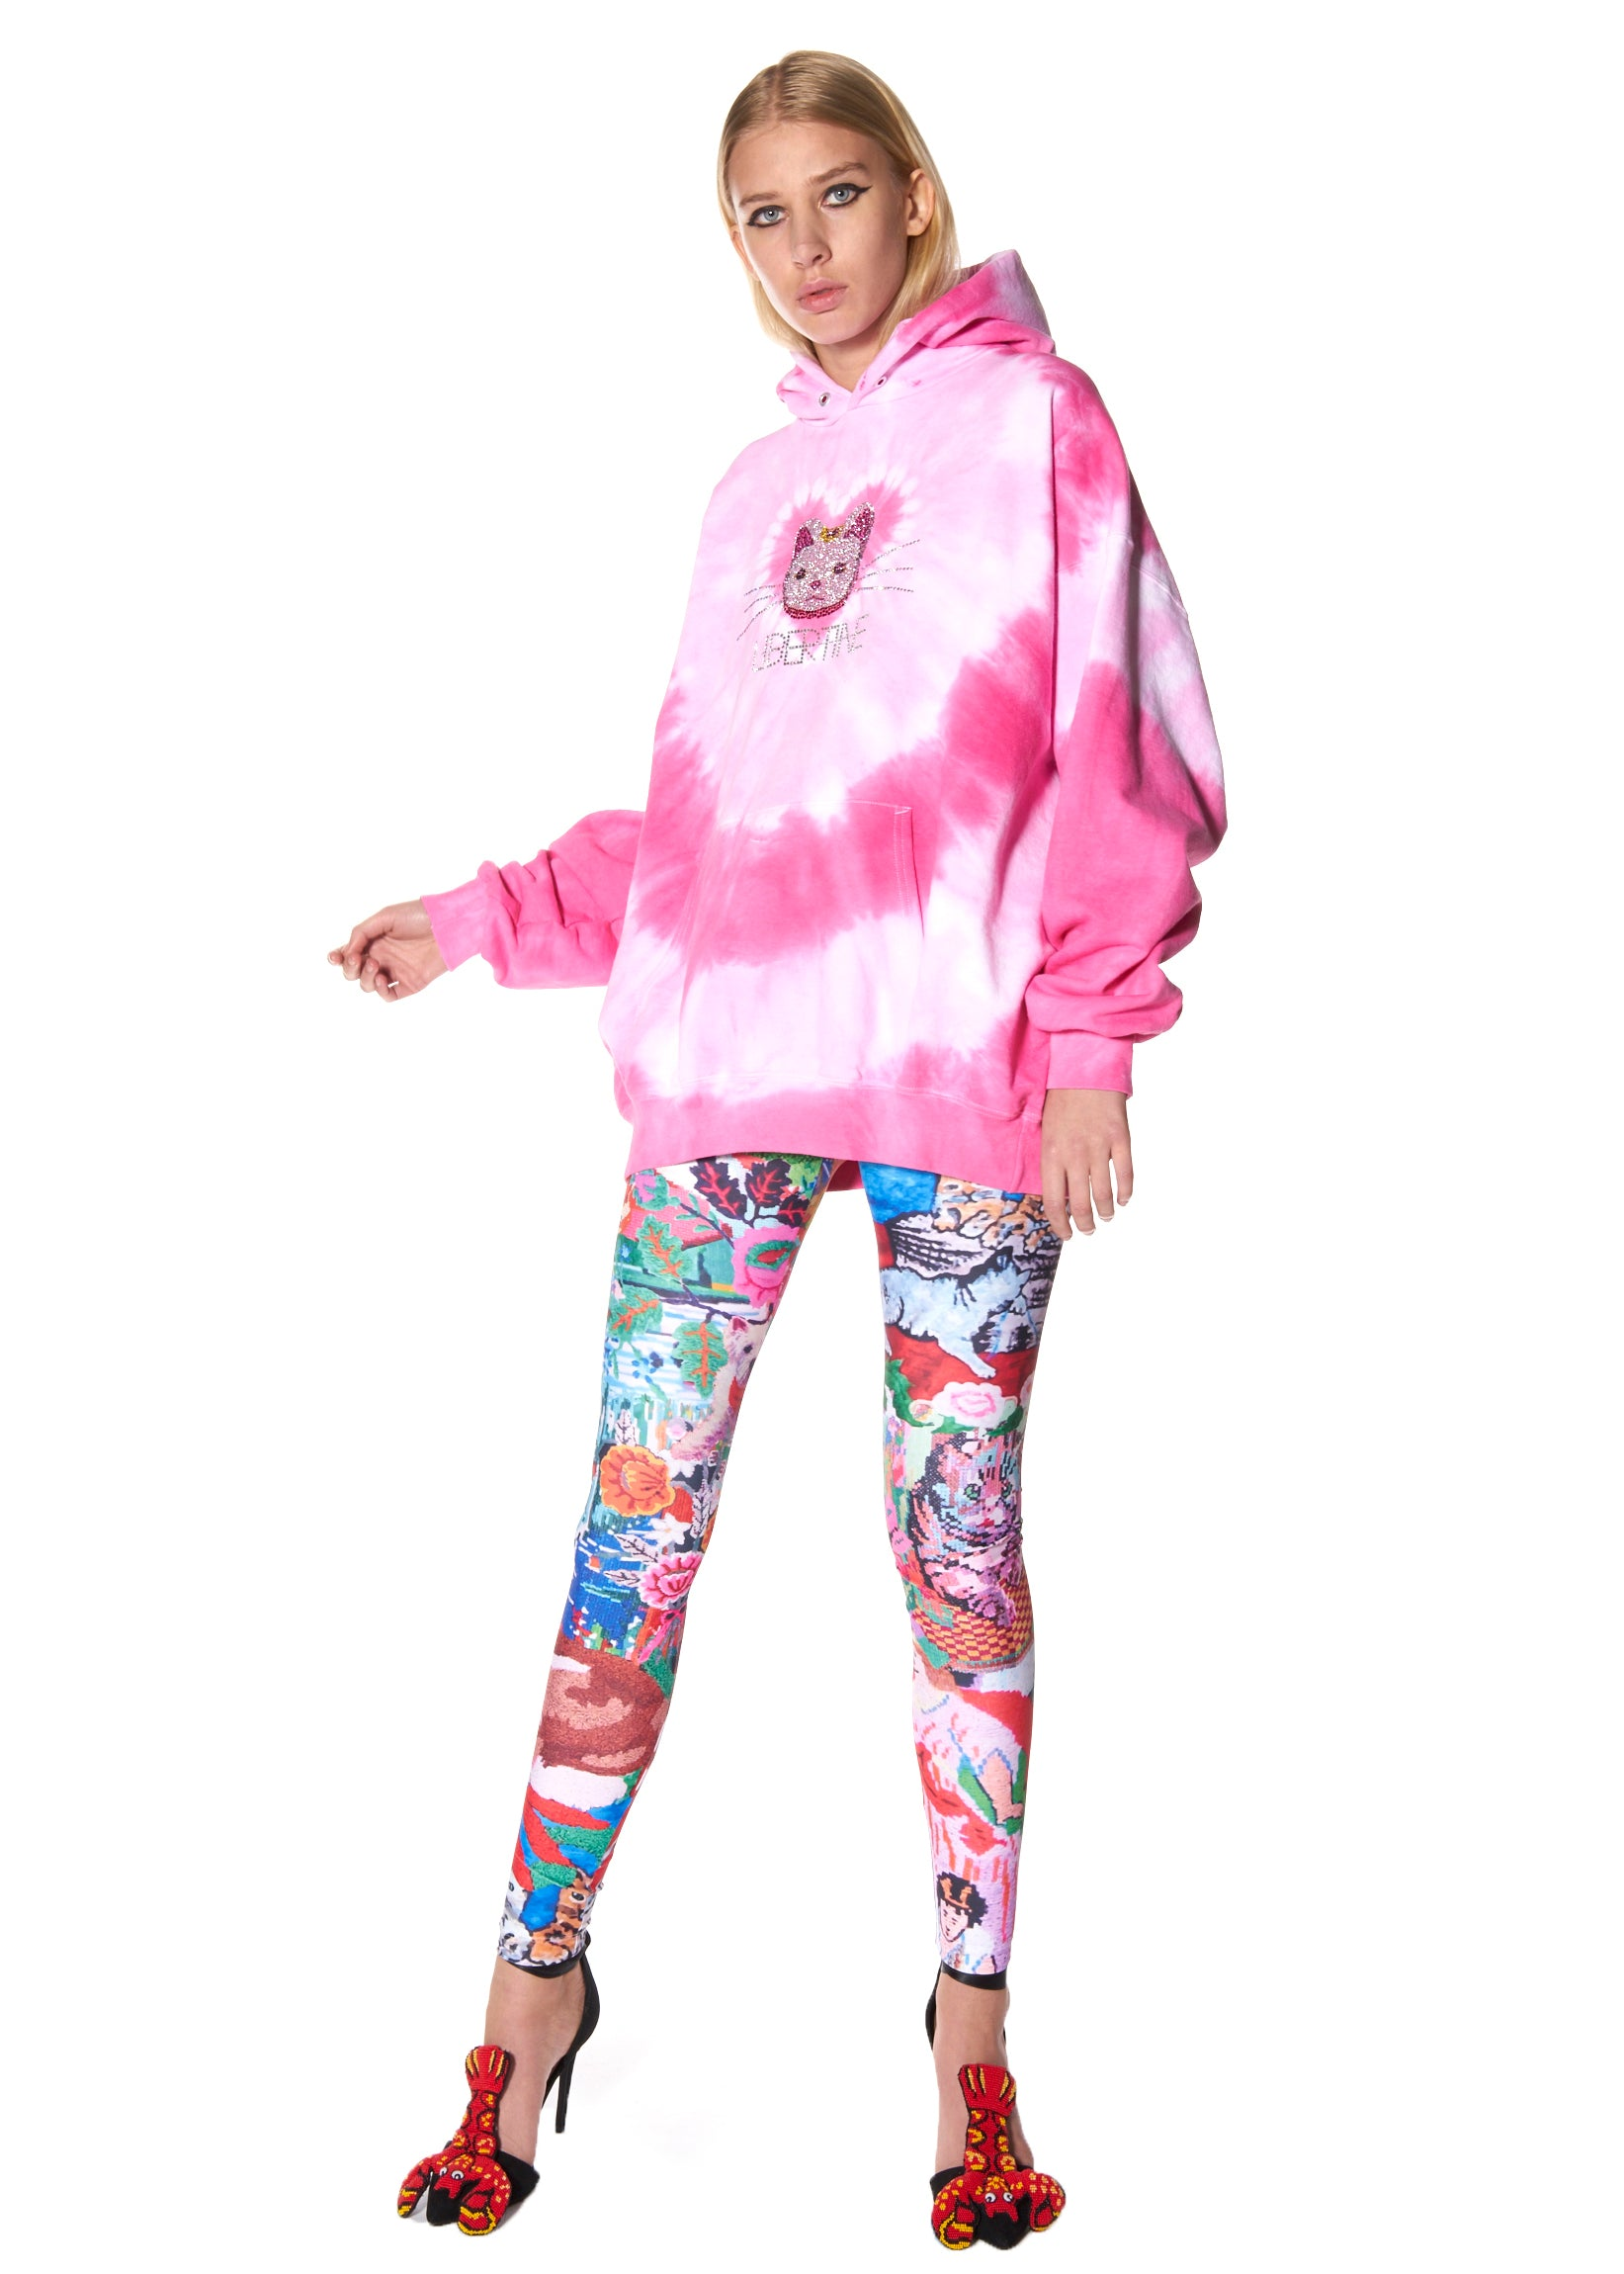 """LUCKY CAT"" TIE DYE HOODED PULLOVER SWEATSHIRT - Men's Tops - Libertine"